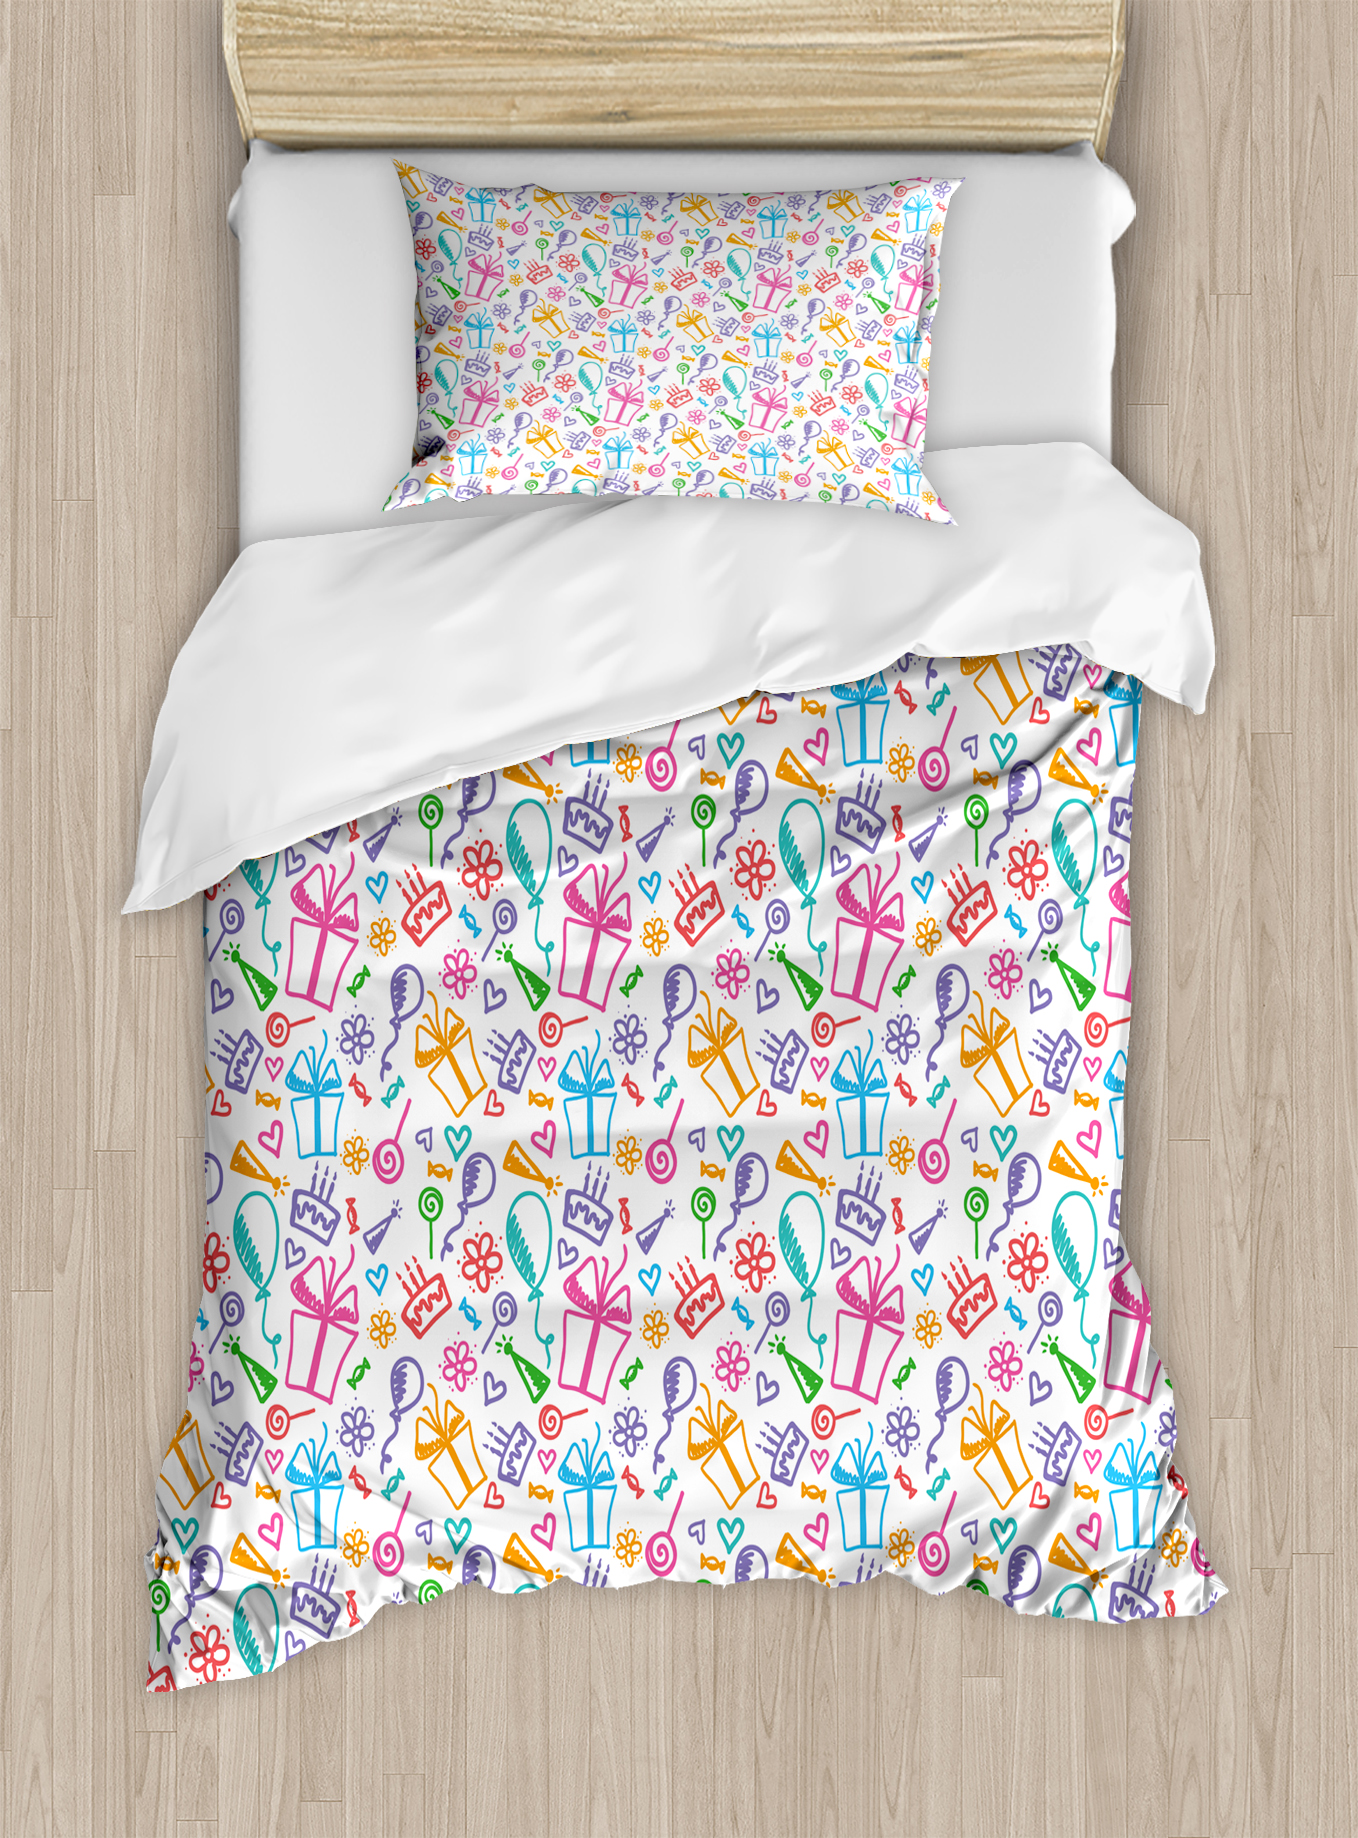 Birthday Decorations Twin Size Duvet Cover Set, Colorful Sketch of Balloons Flowers... by Kozmos